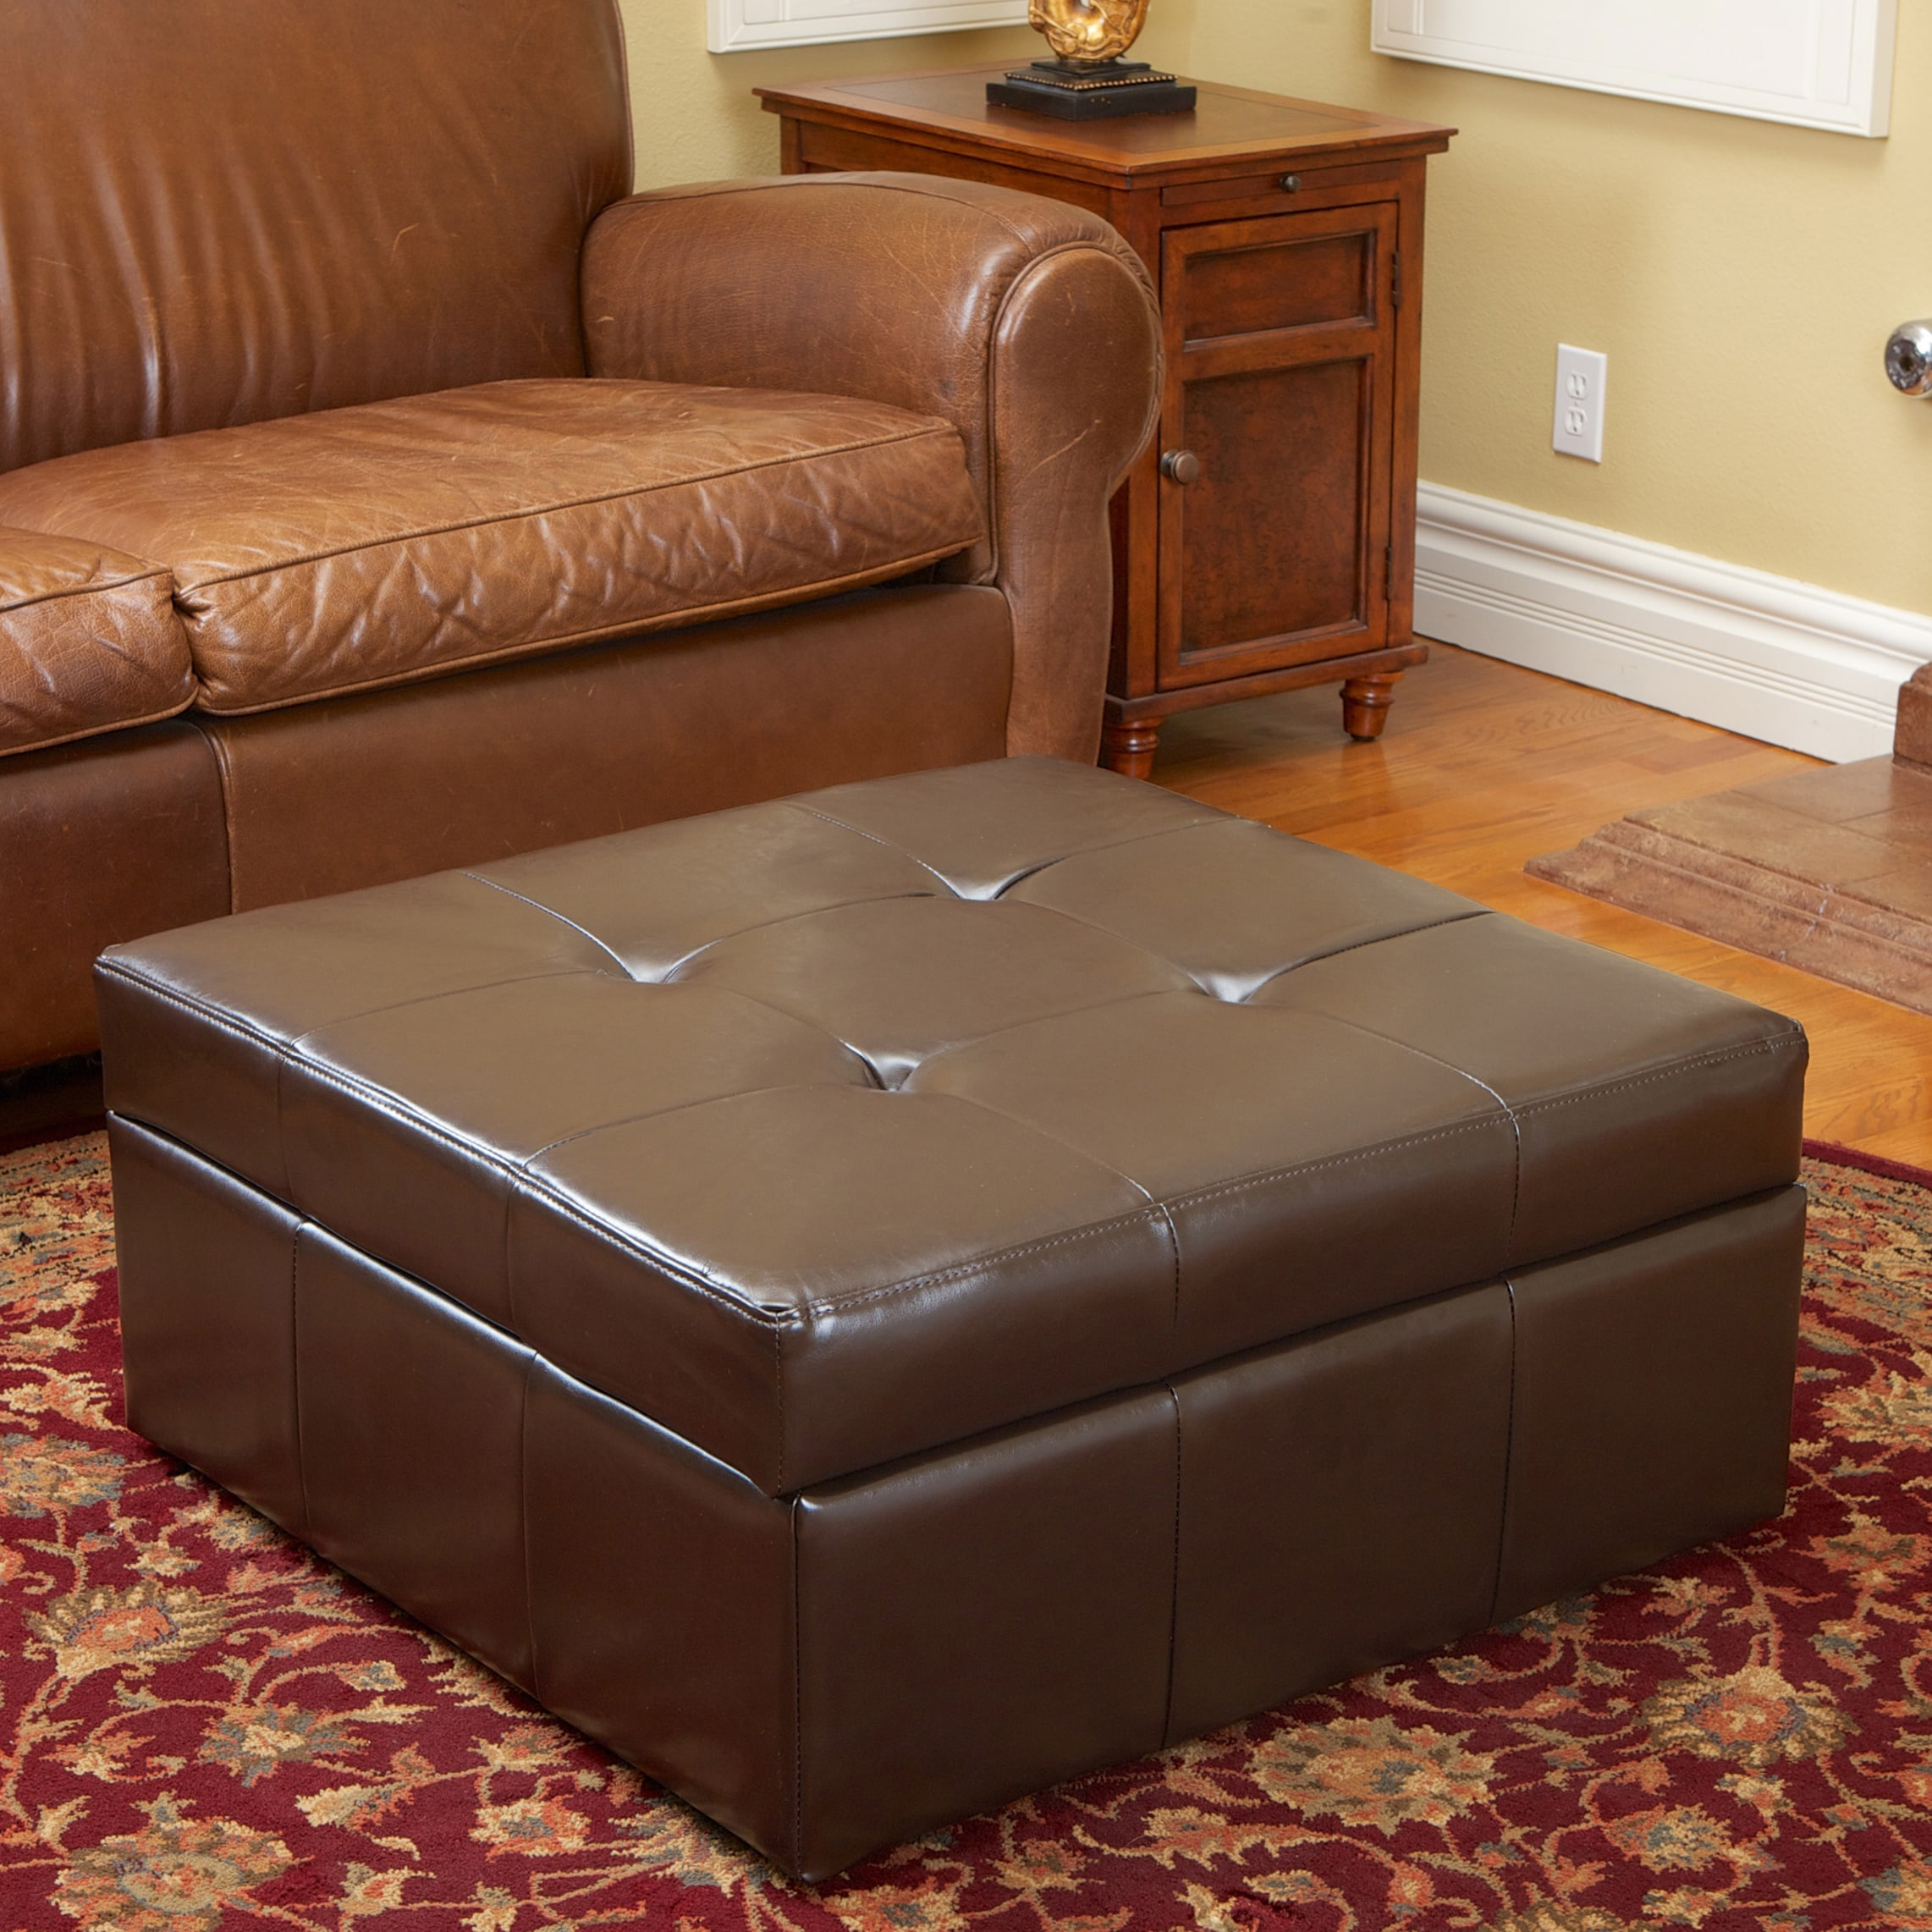 Awesome Chatsworth Brown Leather Storage Ottoman By Christopher Knight Home   Free  Shipping Today   Overstock   14974234